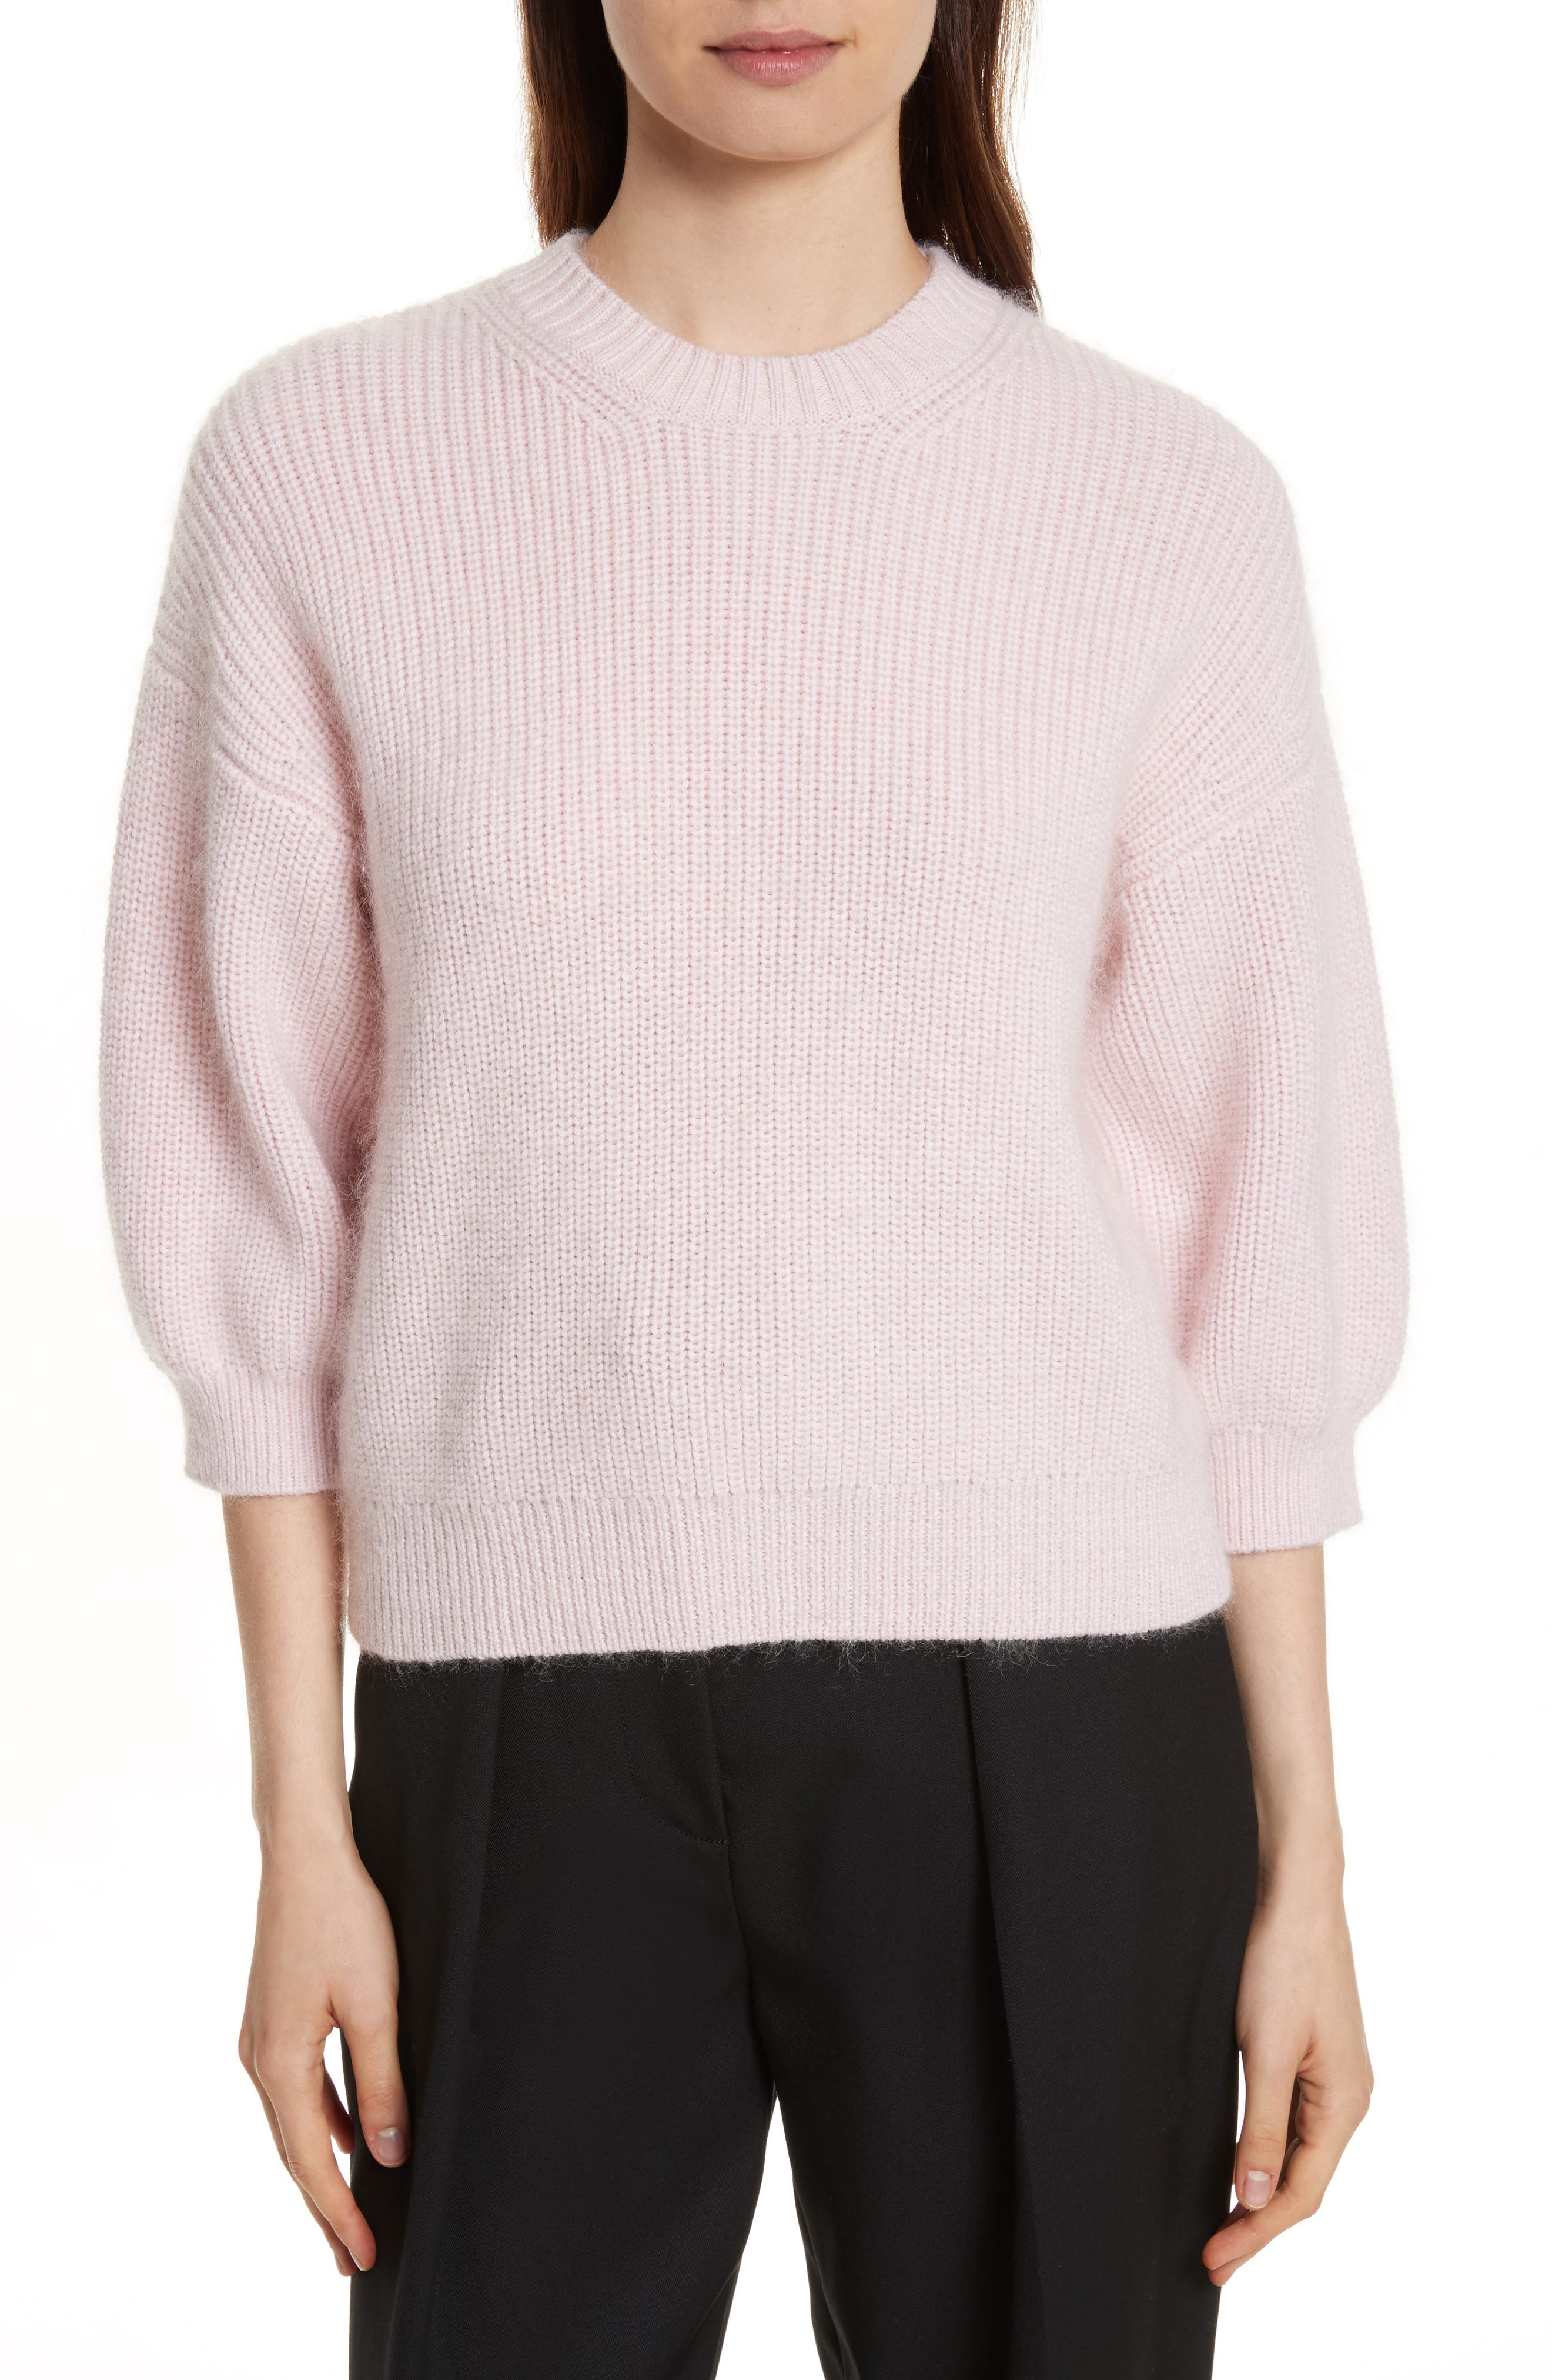 Alternate Image 1 Selected - 3.1 Phillip Lim Puff Sleeve Wool & Mohair Blend Sweater